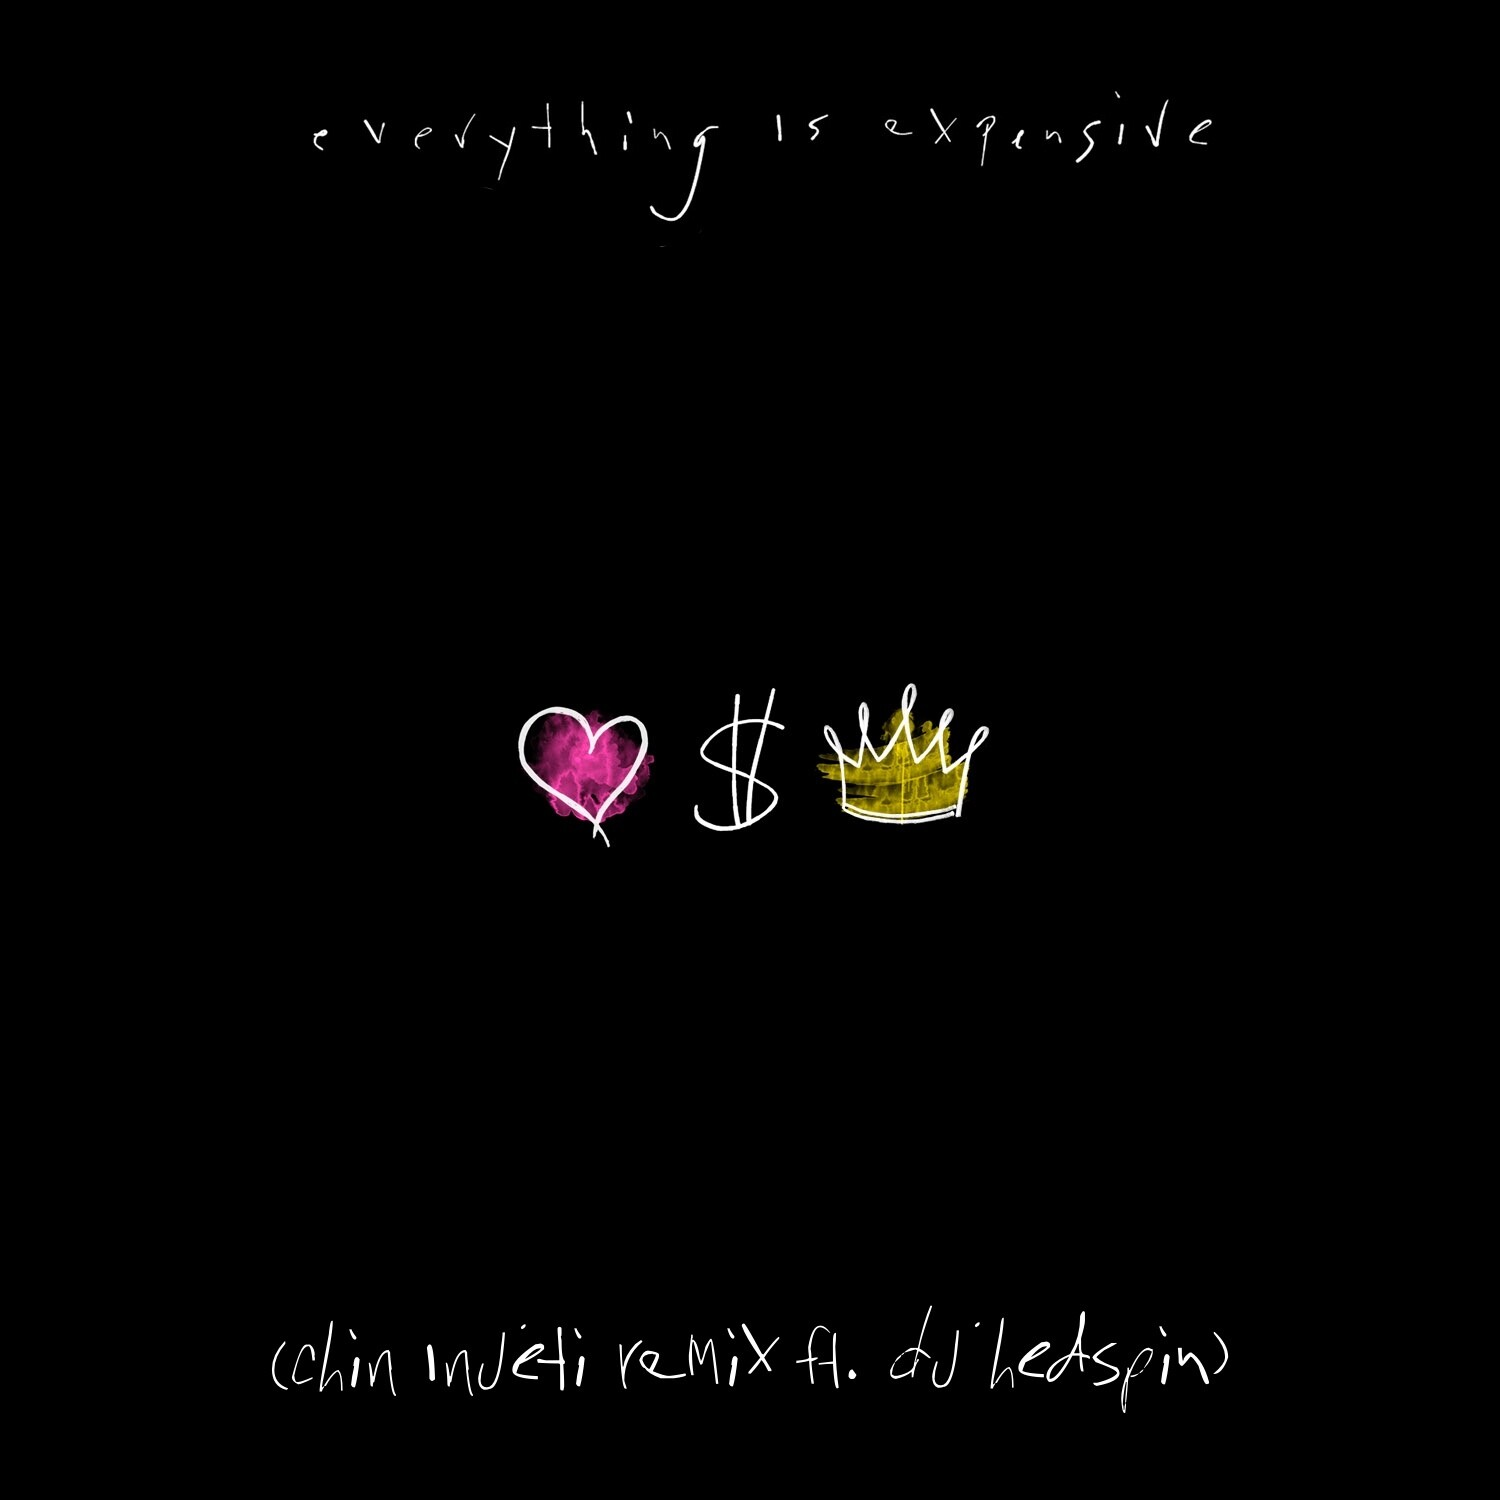 Everything Is Expensive (Chin Injeti Remix ft DJ Hedspin) - Digital Download